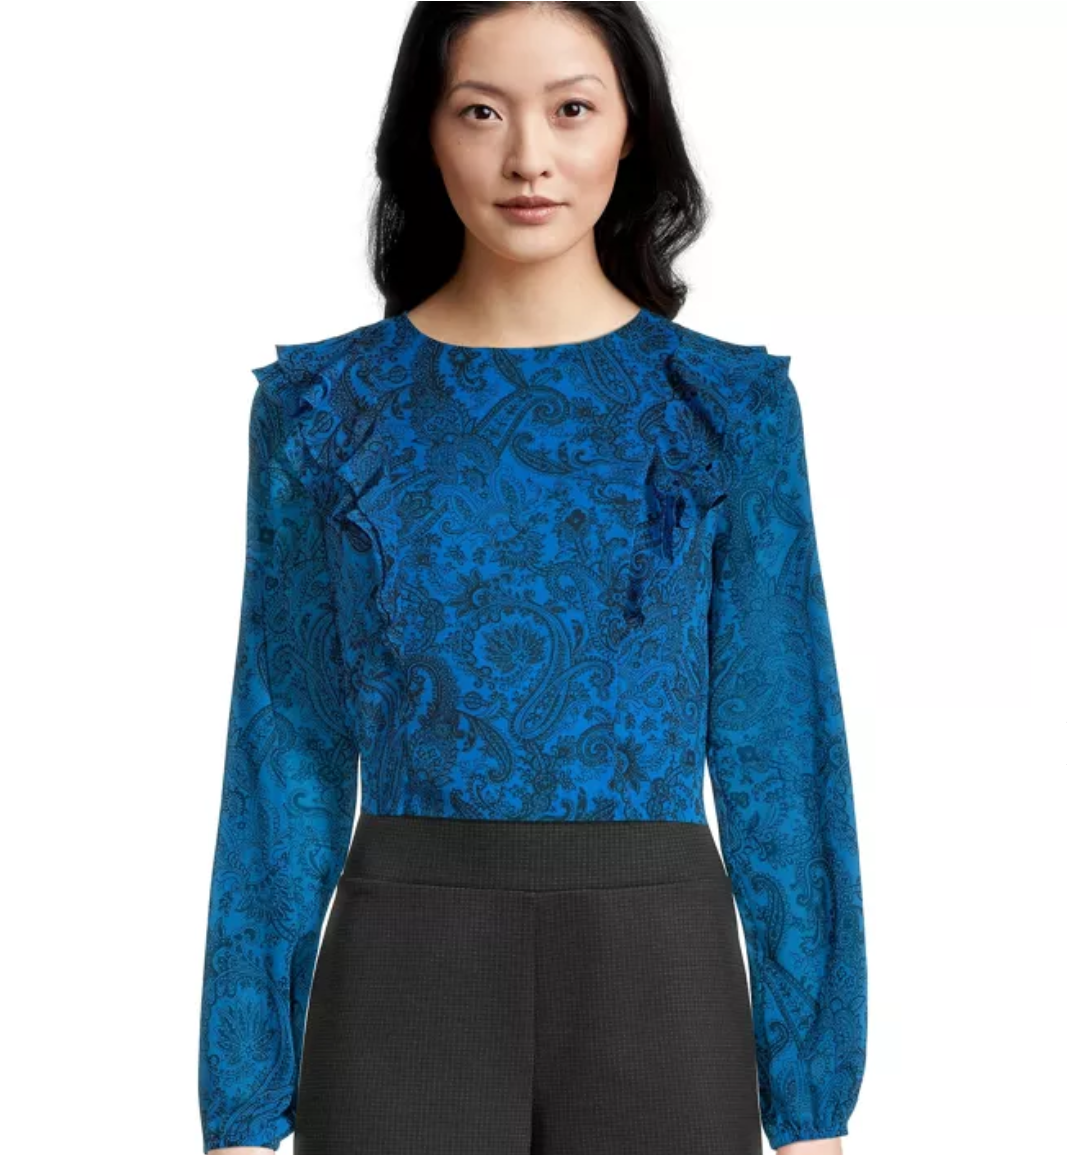 Ann Taylor Factory: Up to 75% off Clearance Styles